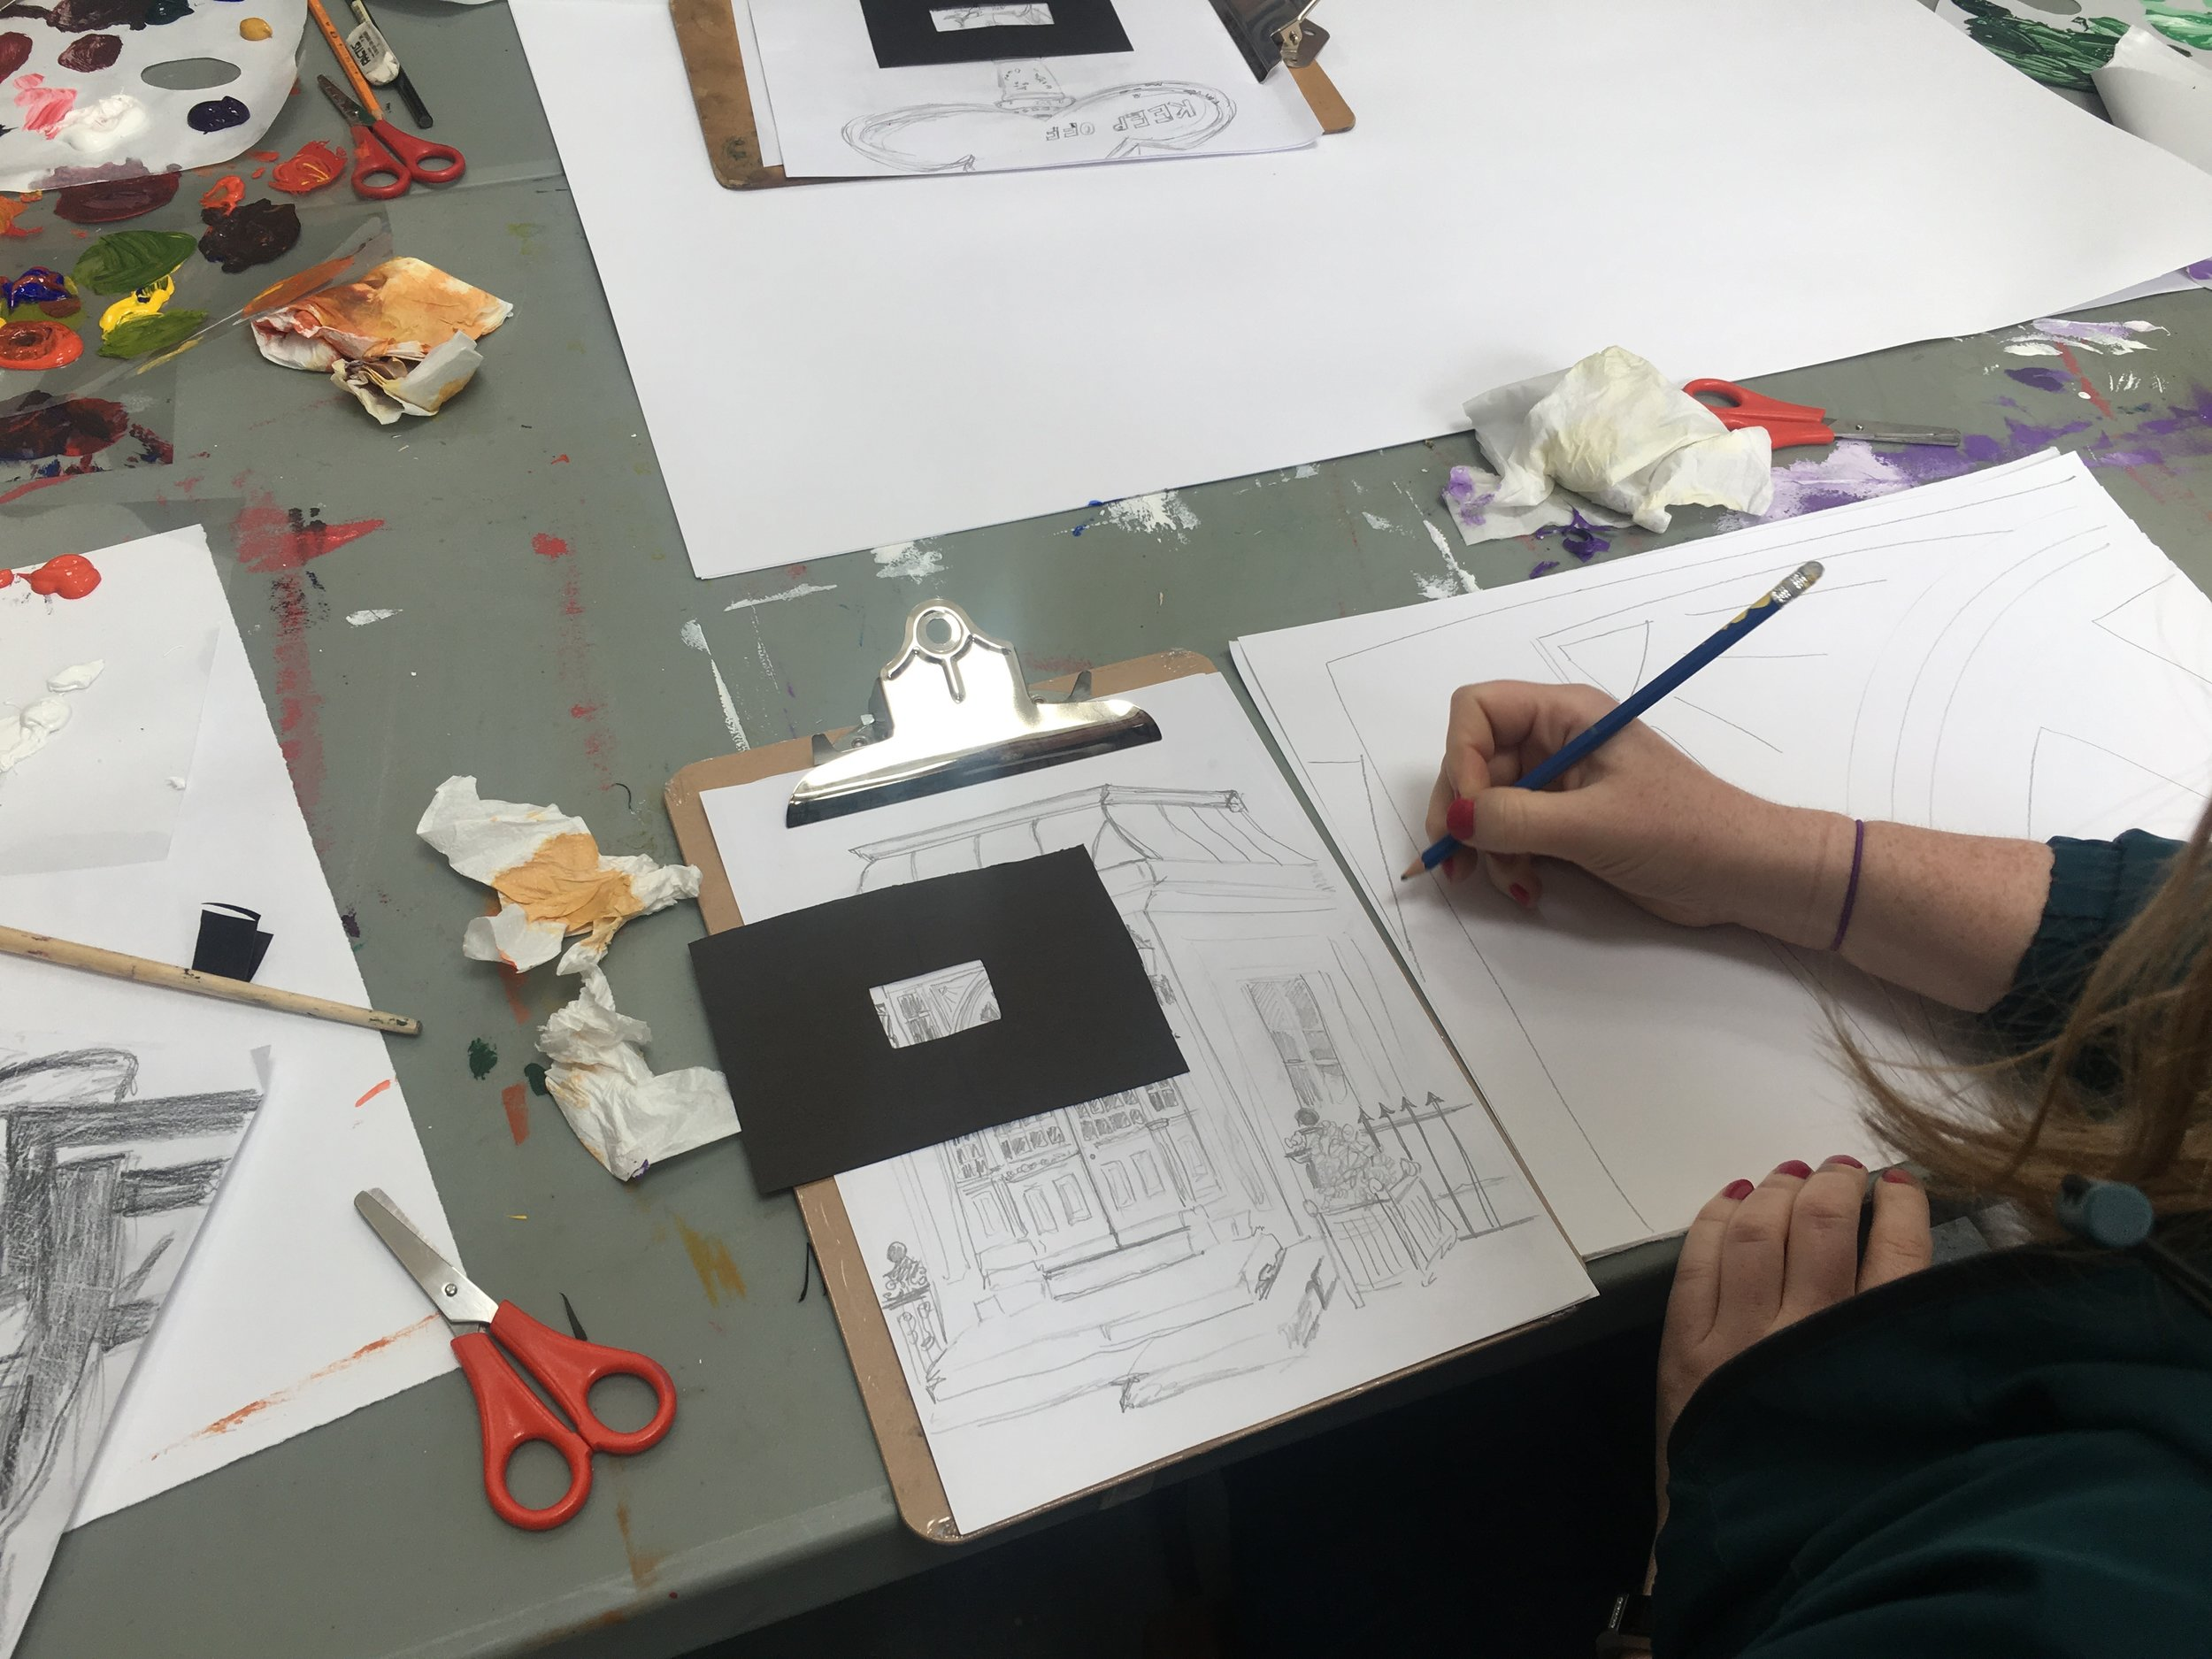 Participants created frames to isolate details on their drawings, these details were then blown up into an abstract composition in a second artwork